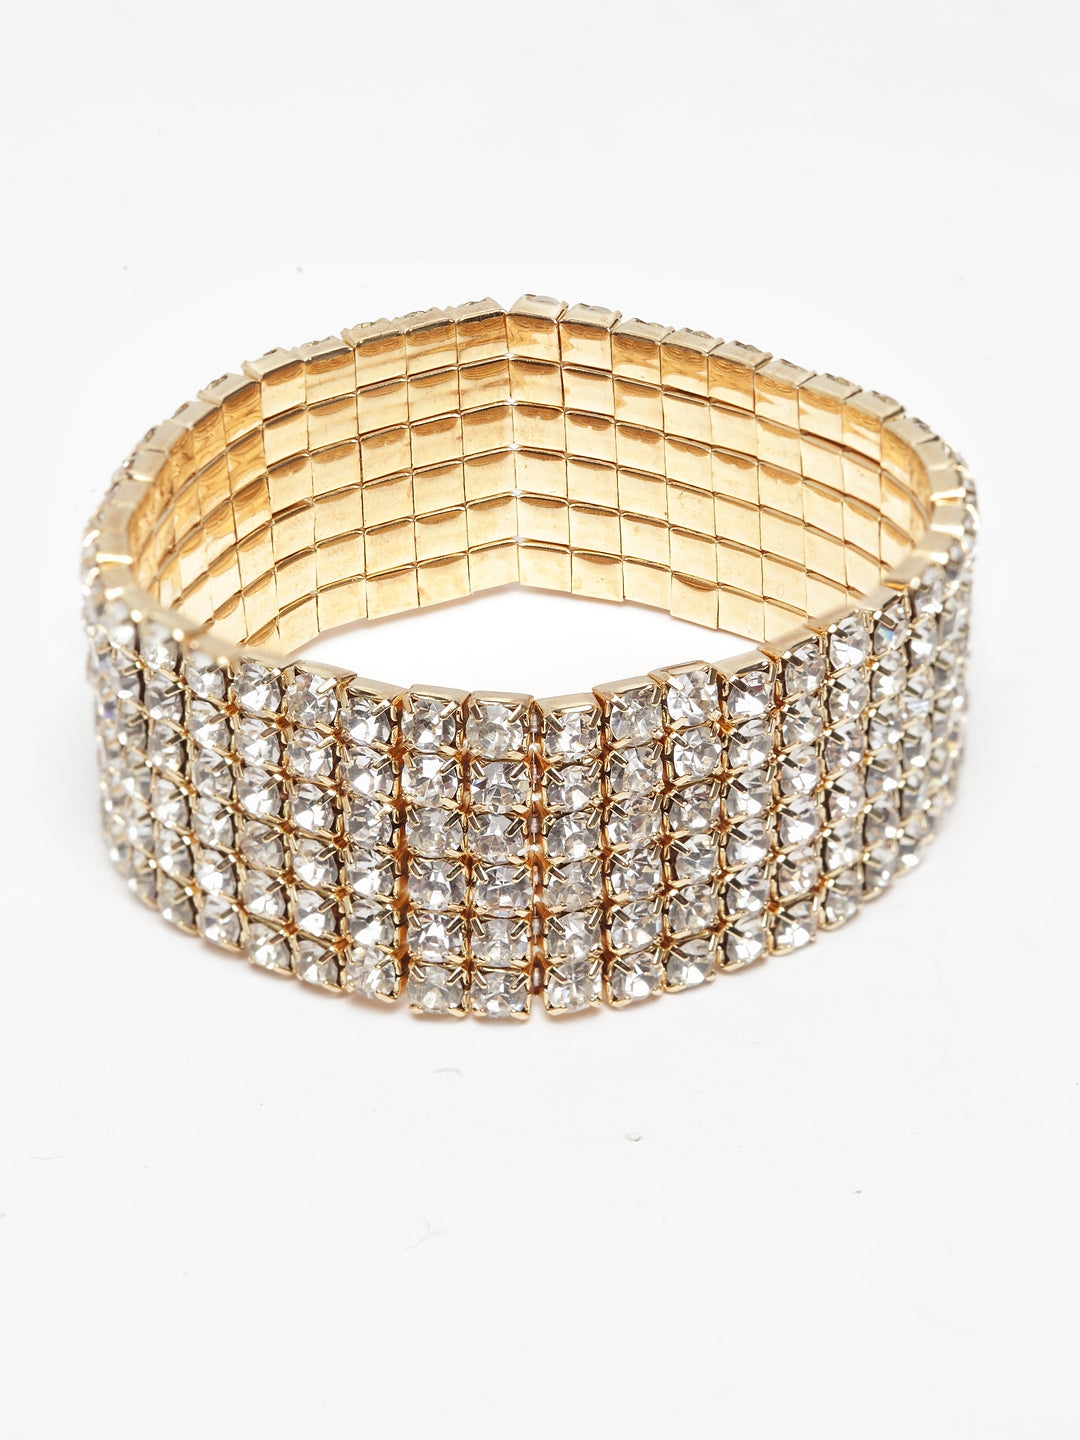 Avant-Garde Paris Luxury Elegant Crystal Tennis Multilayer Bracelet